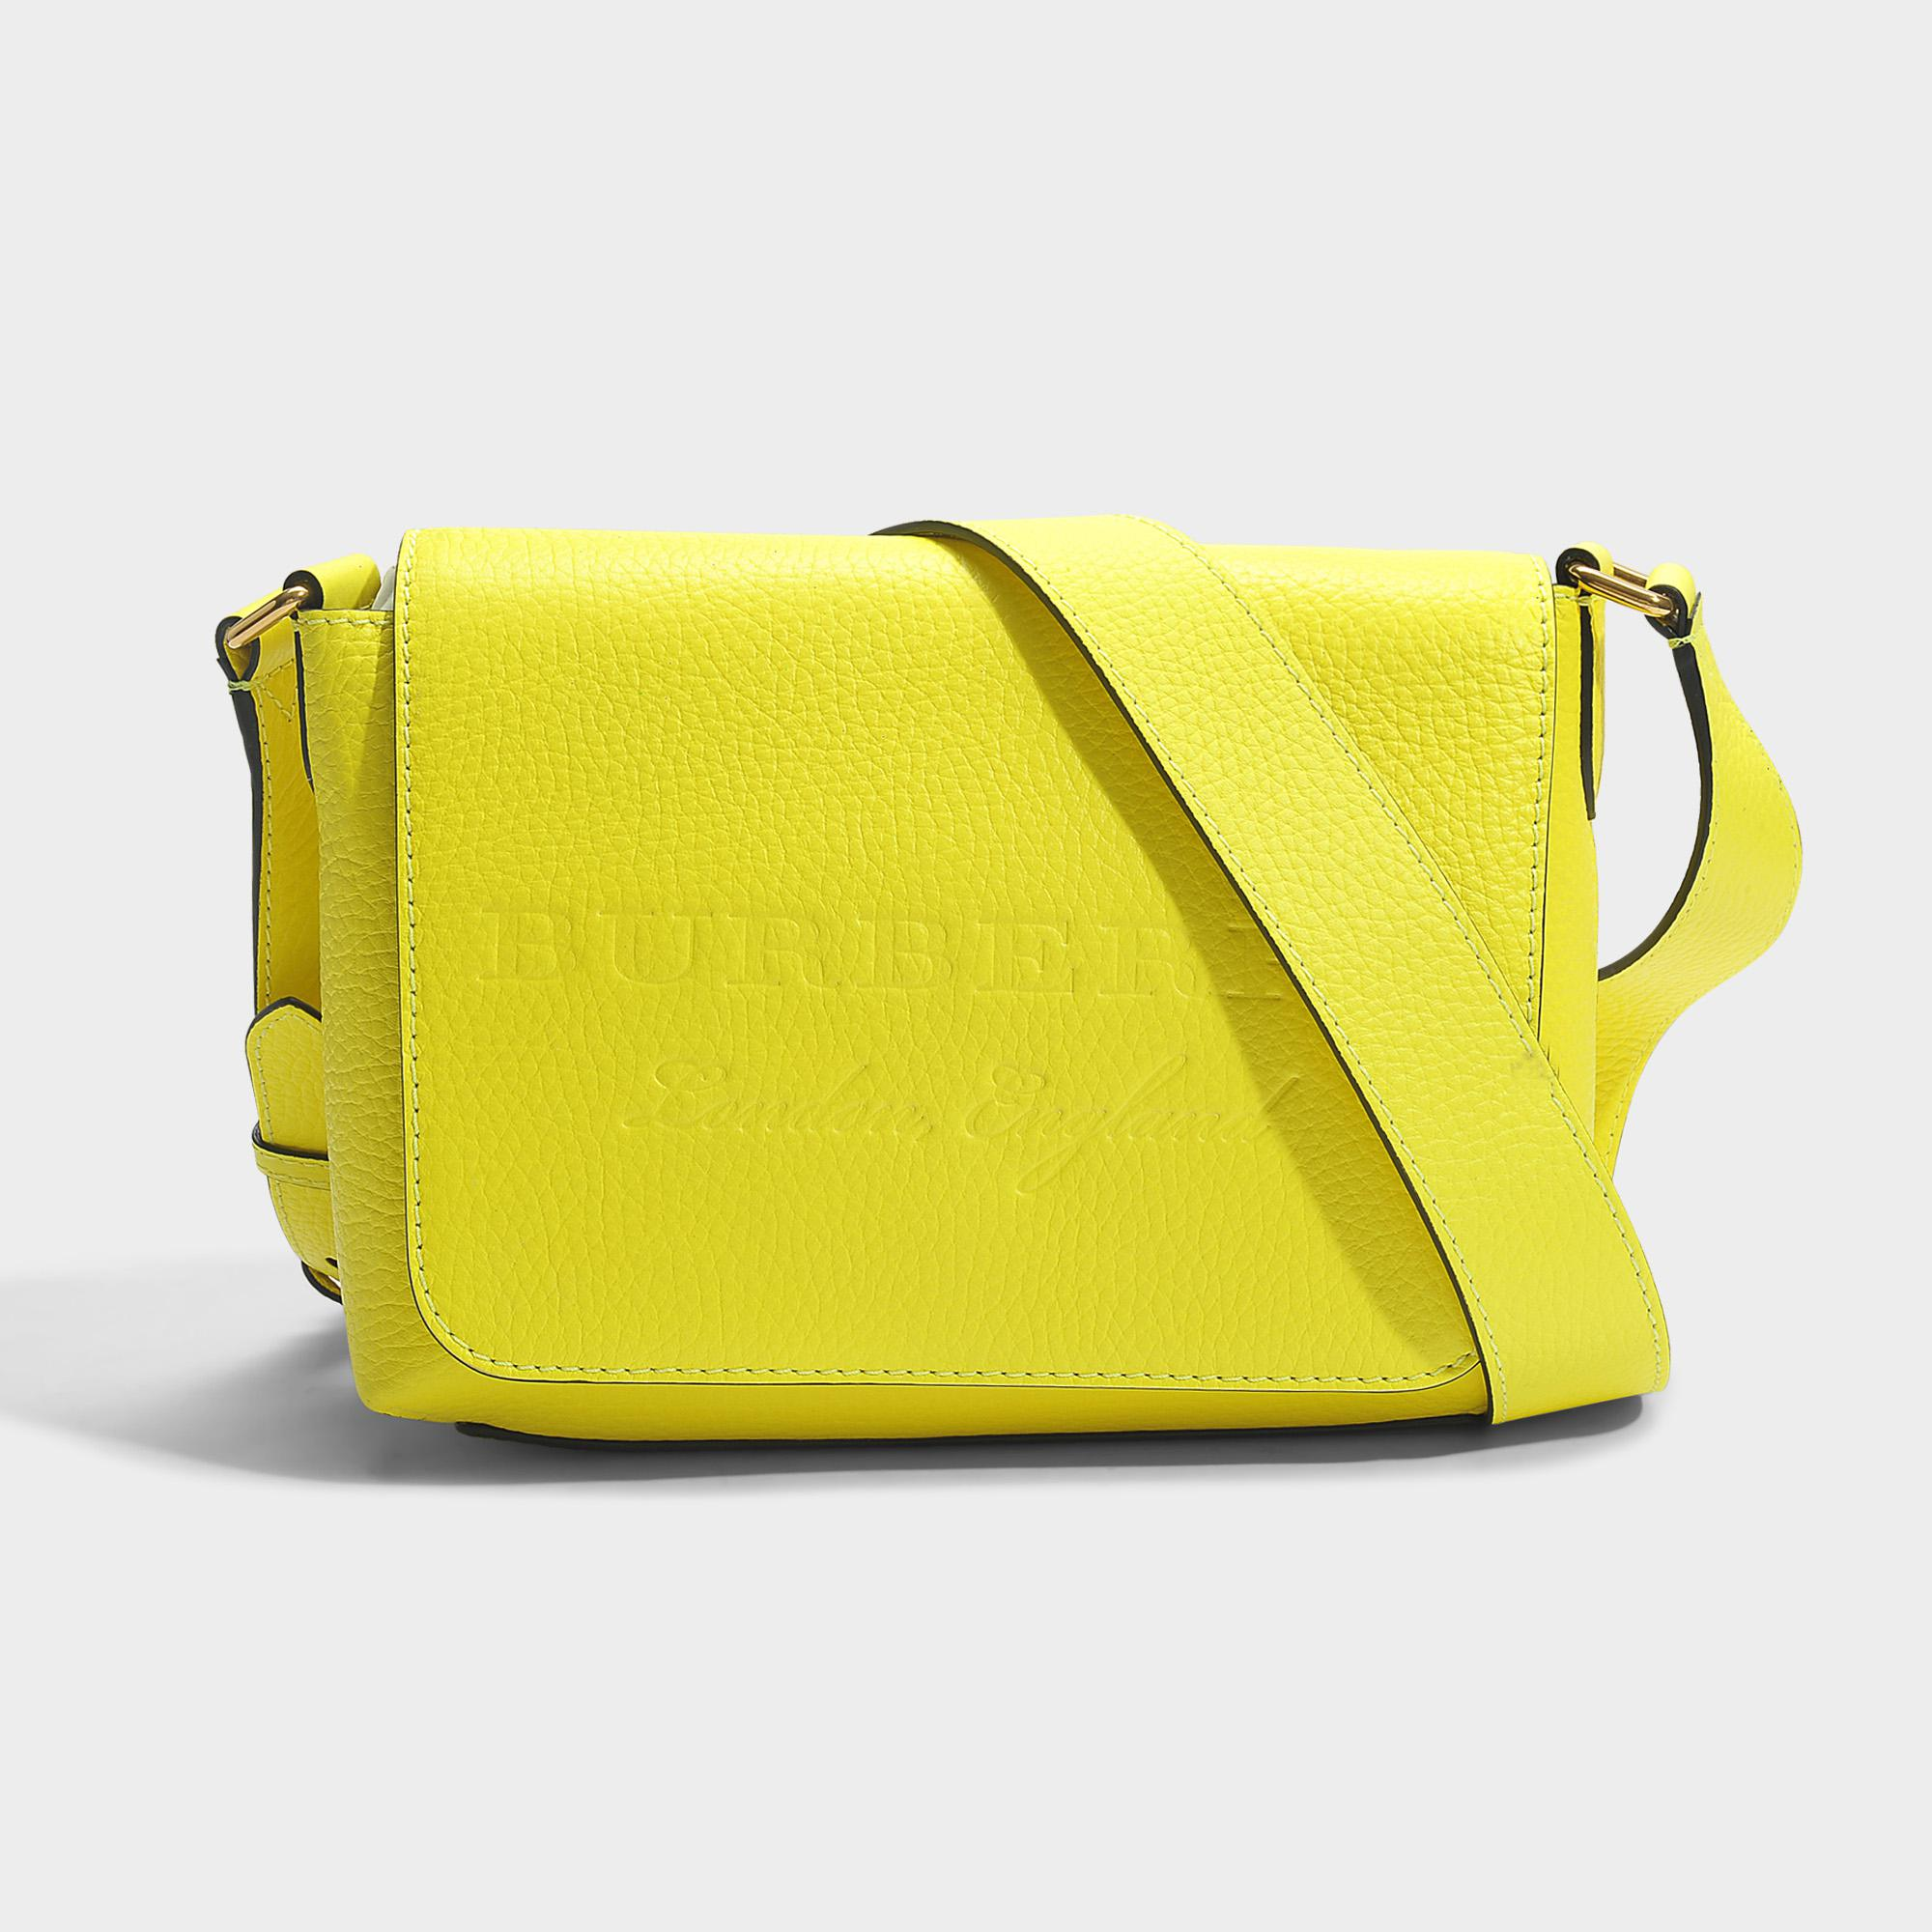 Lyst - Burberry Small Burleigh Crossbody Bag In Neon Yellow Grained ... fced2ab1059c4